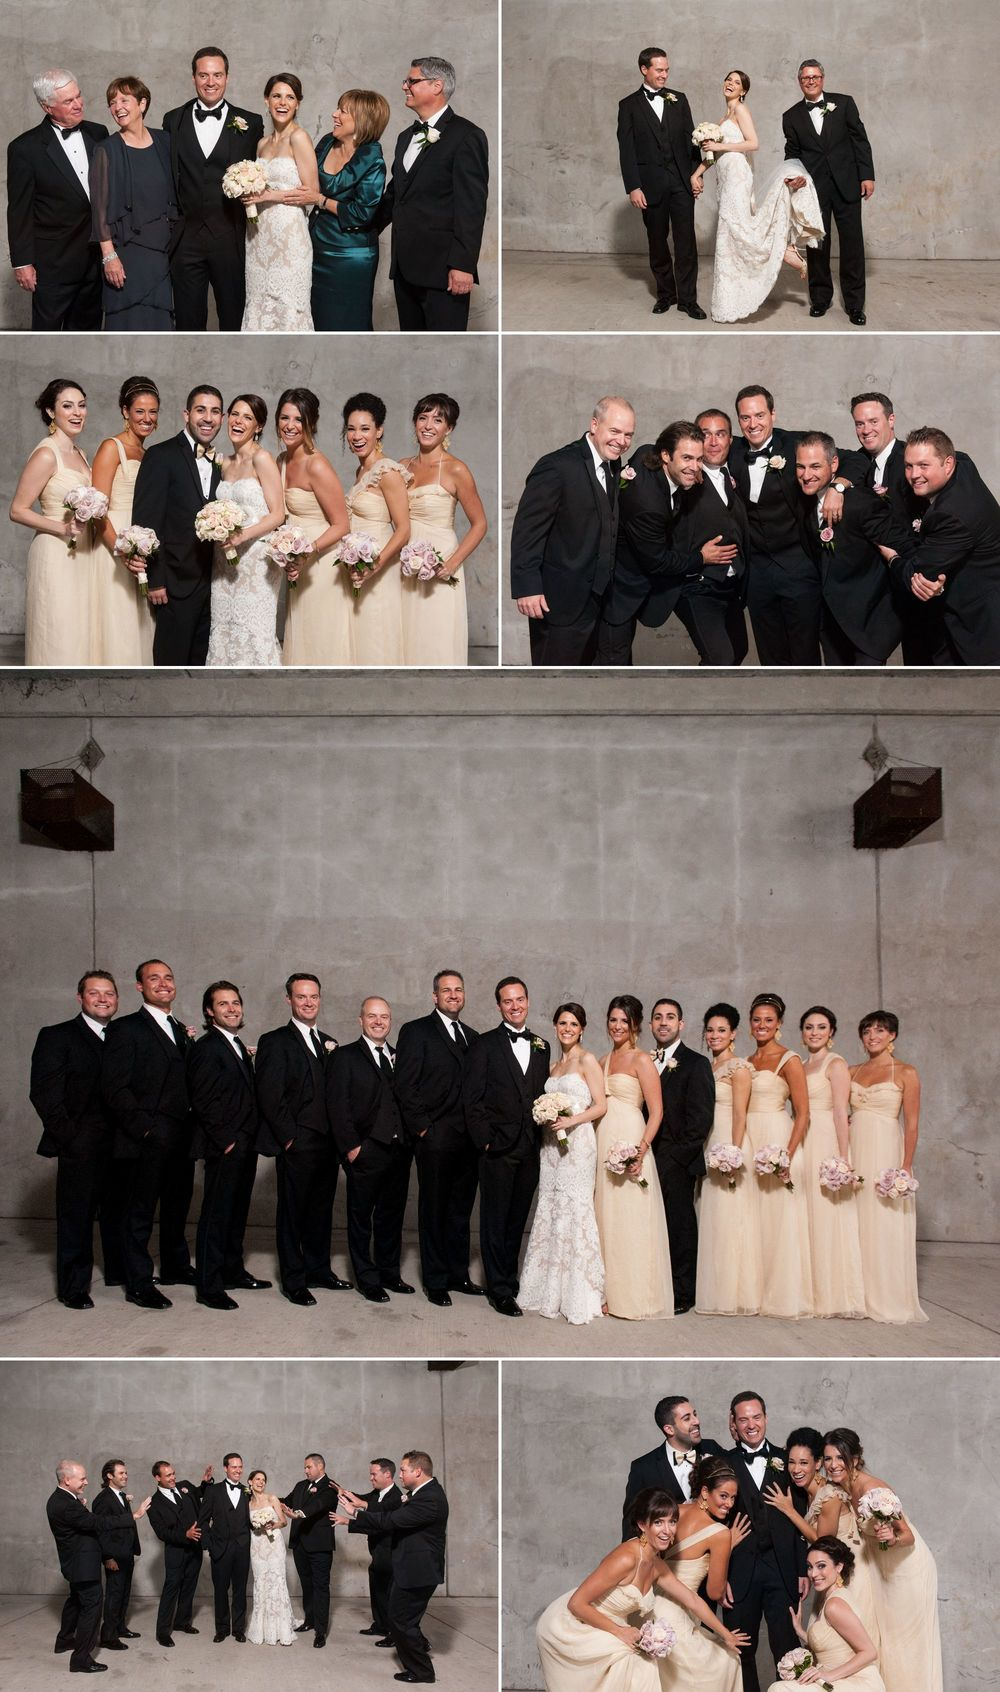 Wedding party photographs in downtown ottawa.